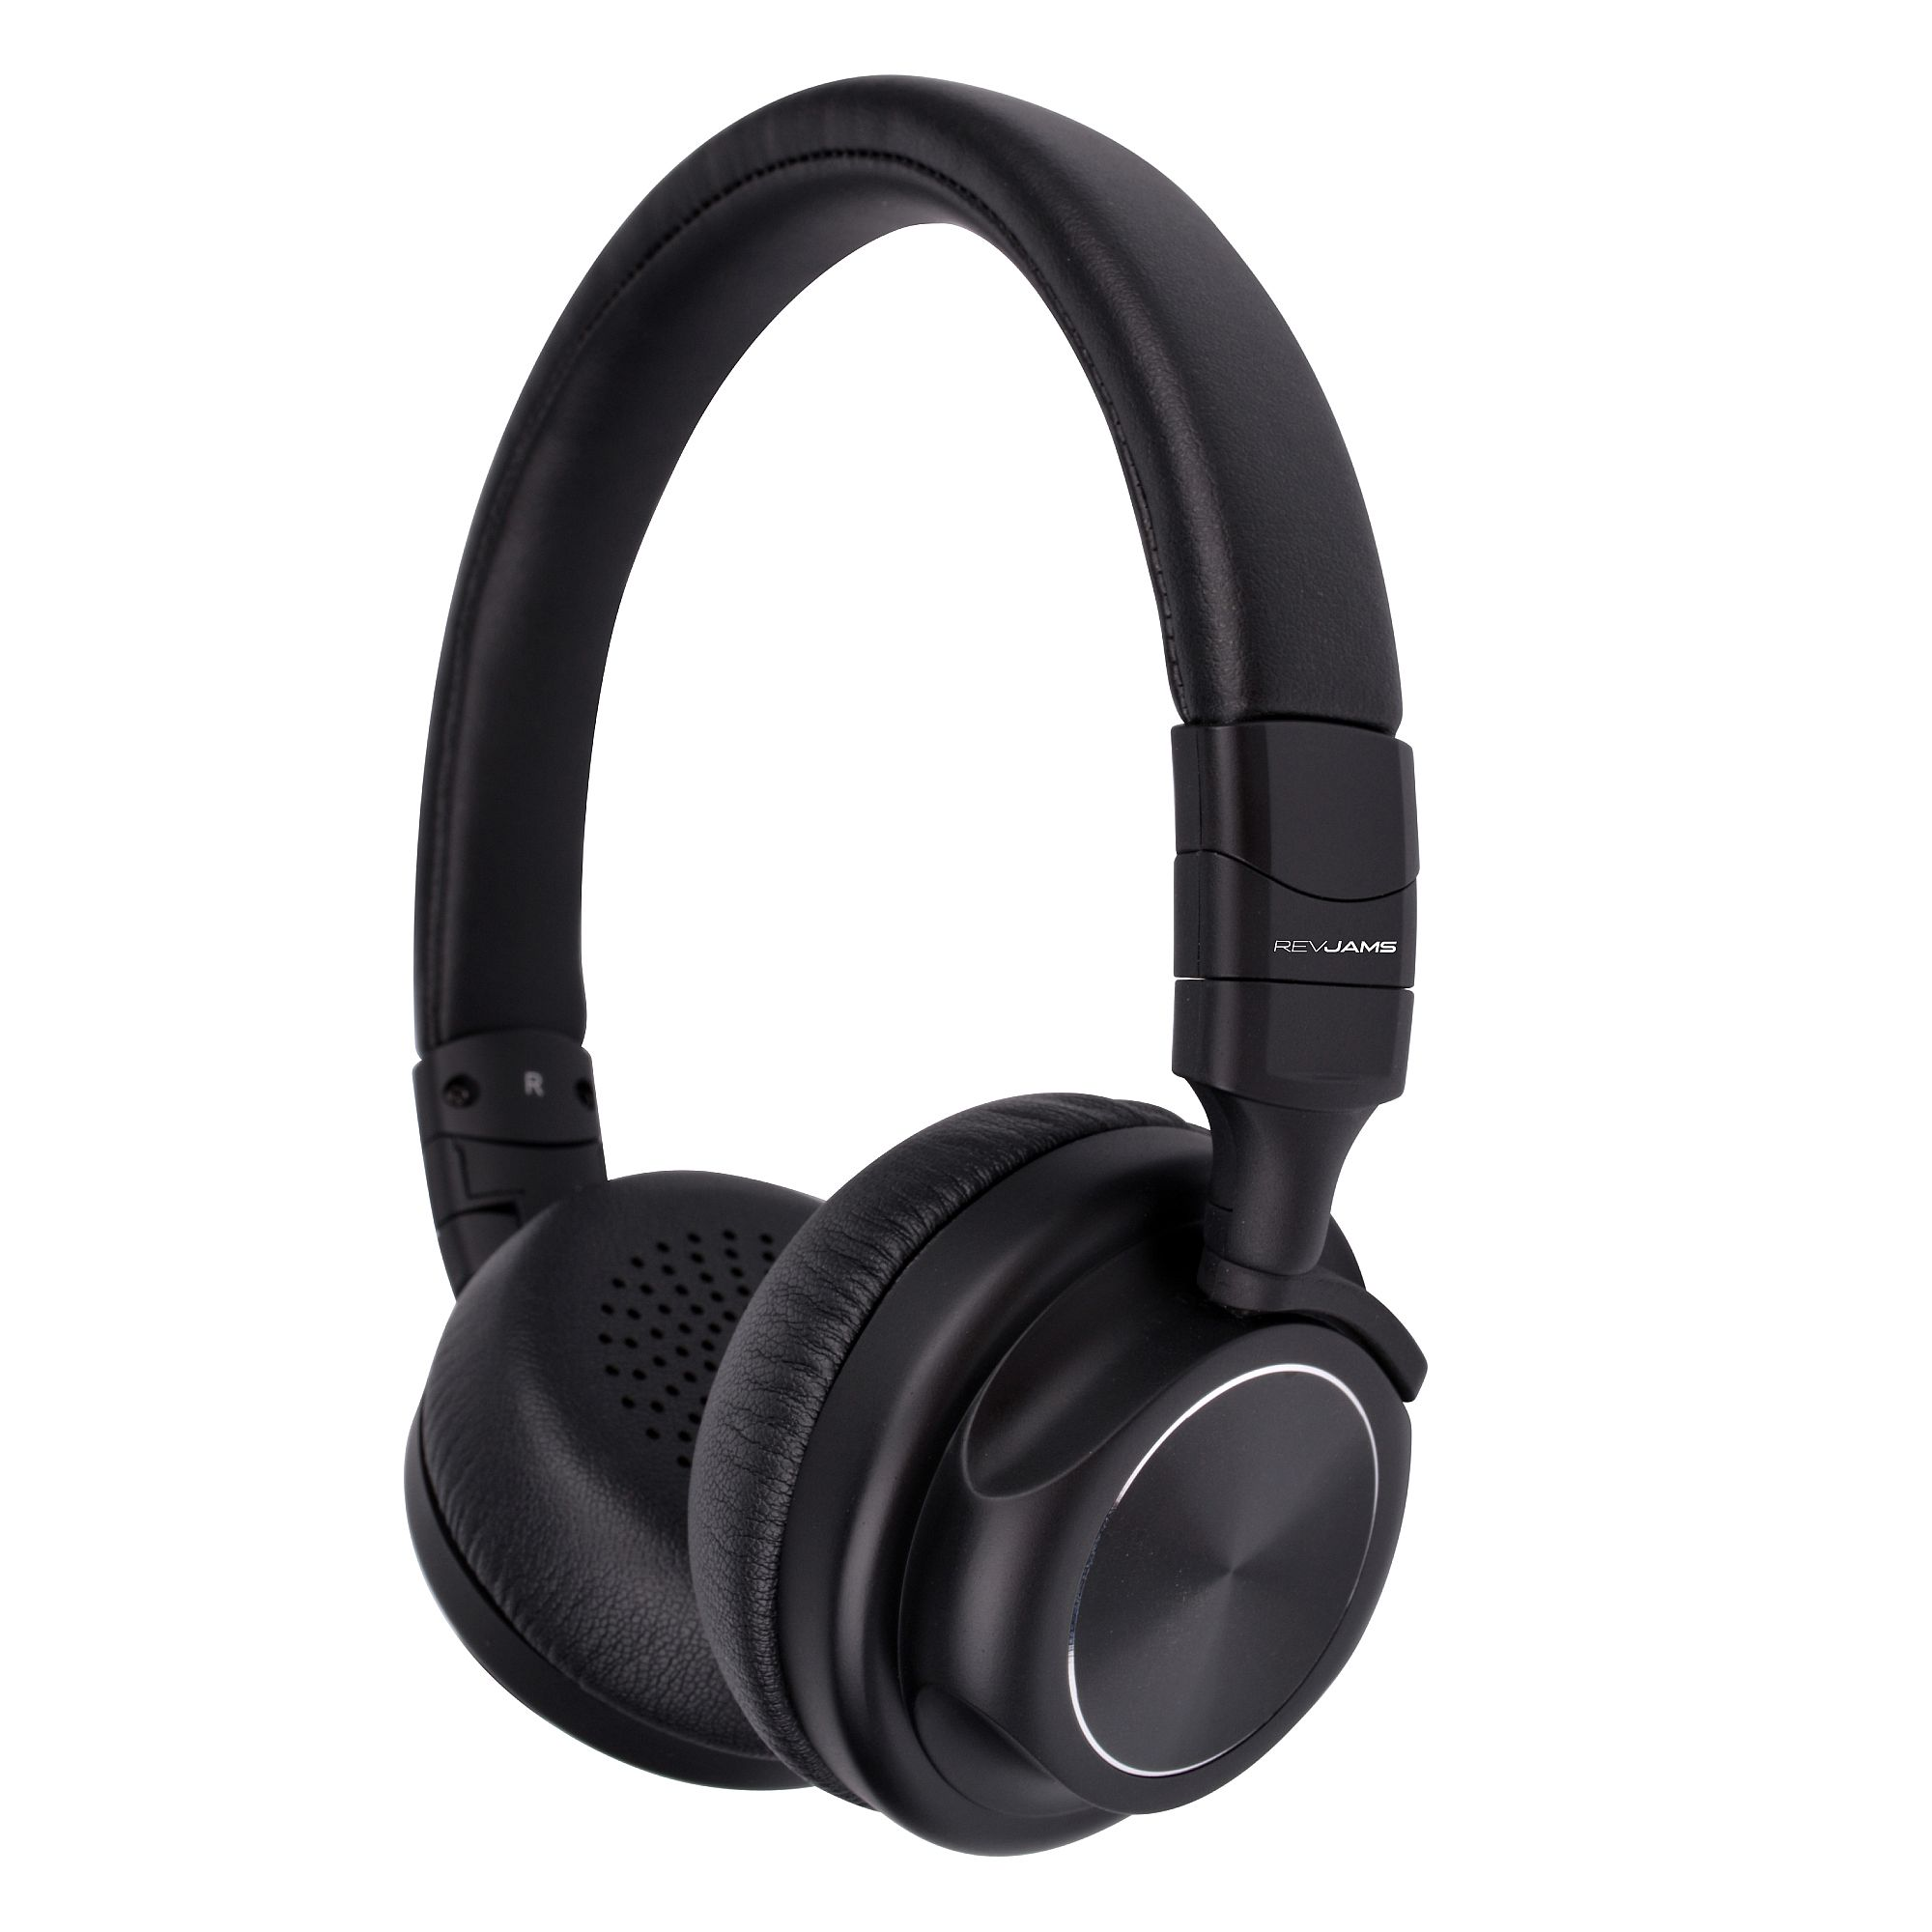 RevJams STUDIO LITE Bluetooth Headphones